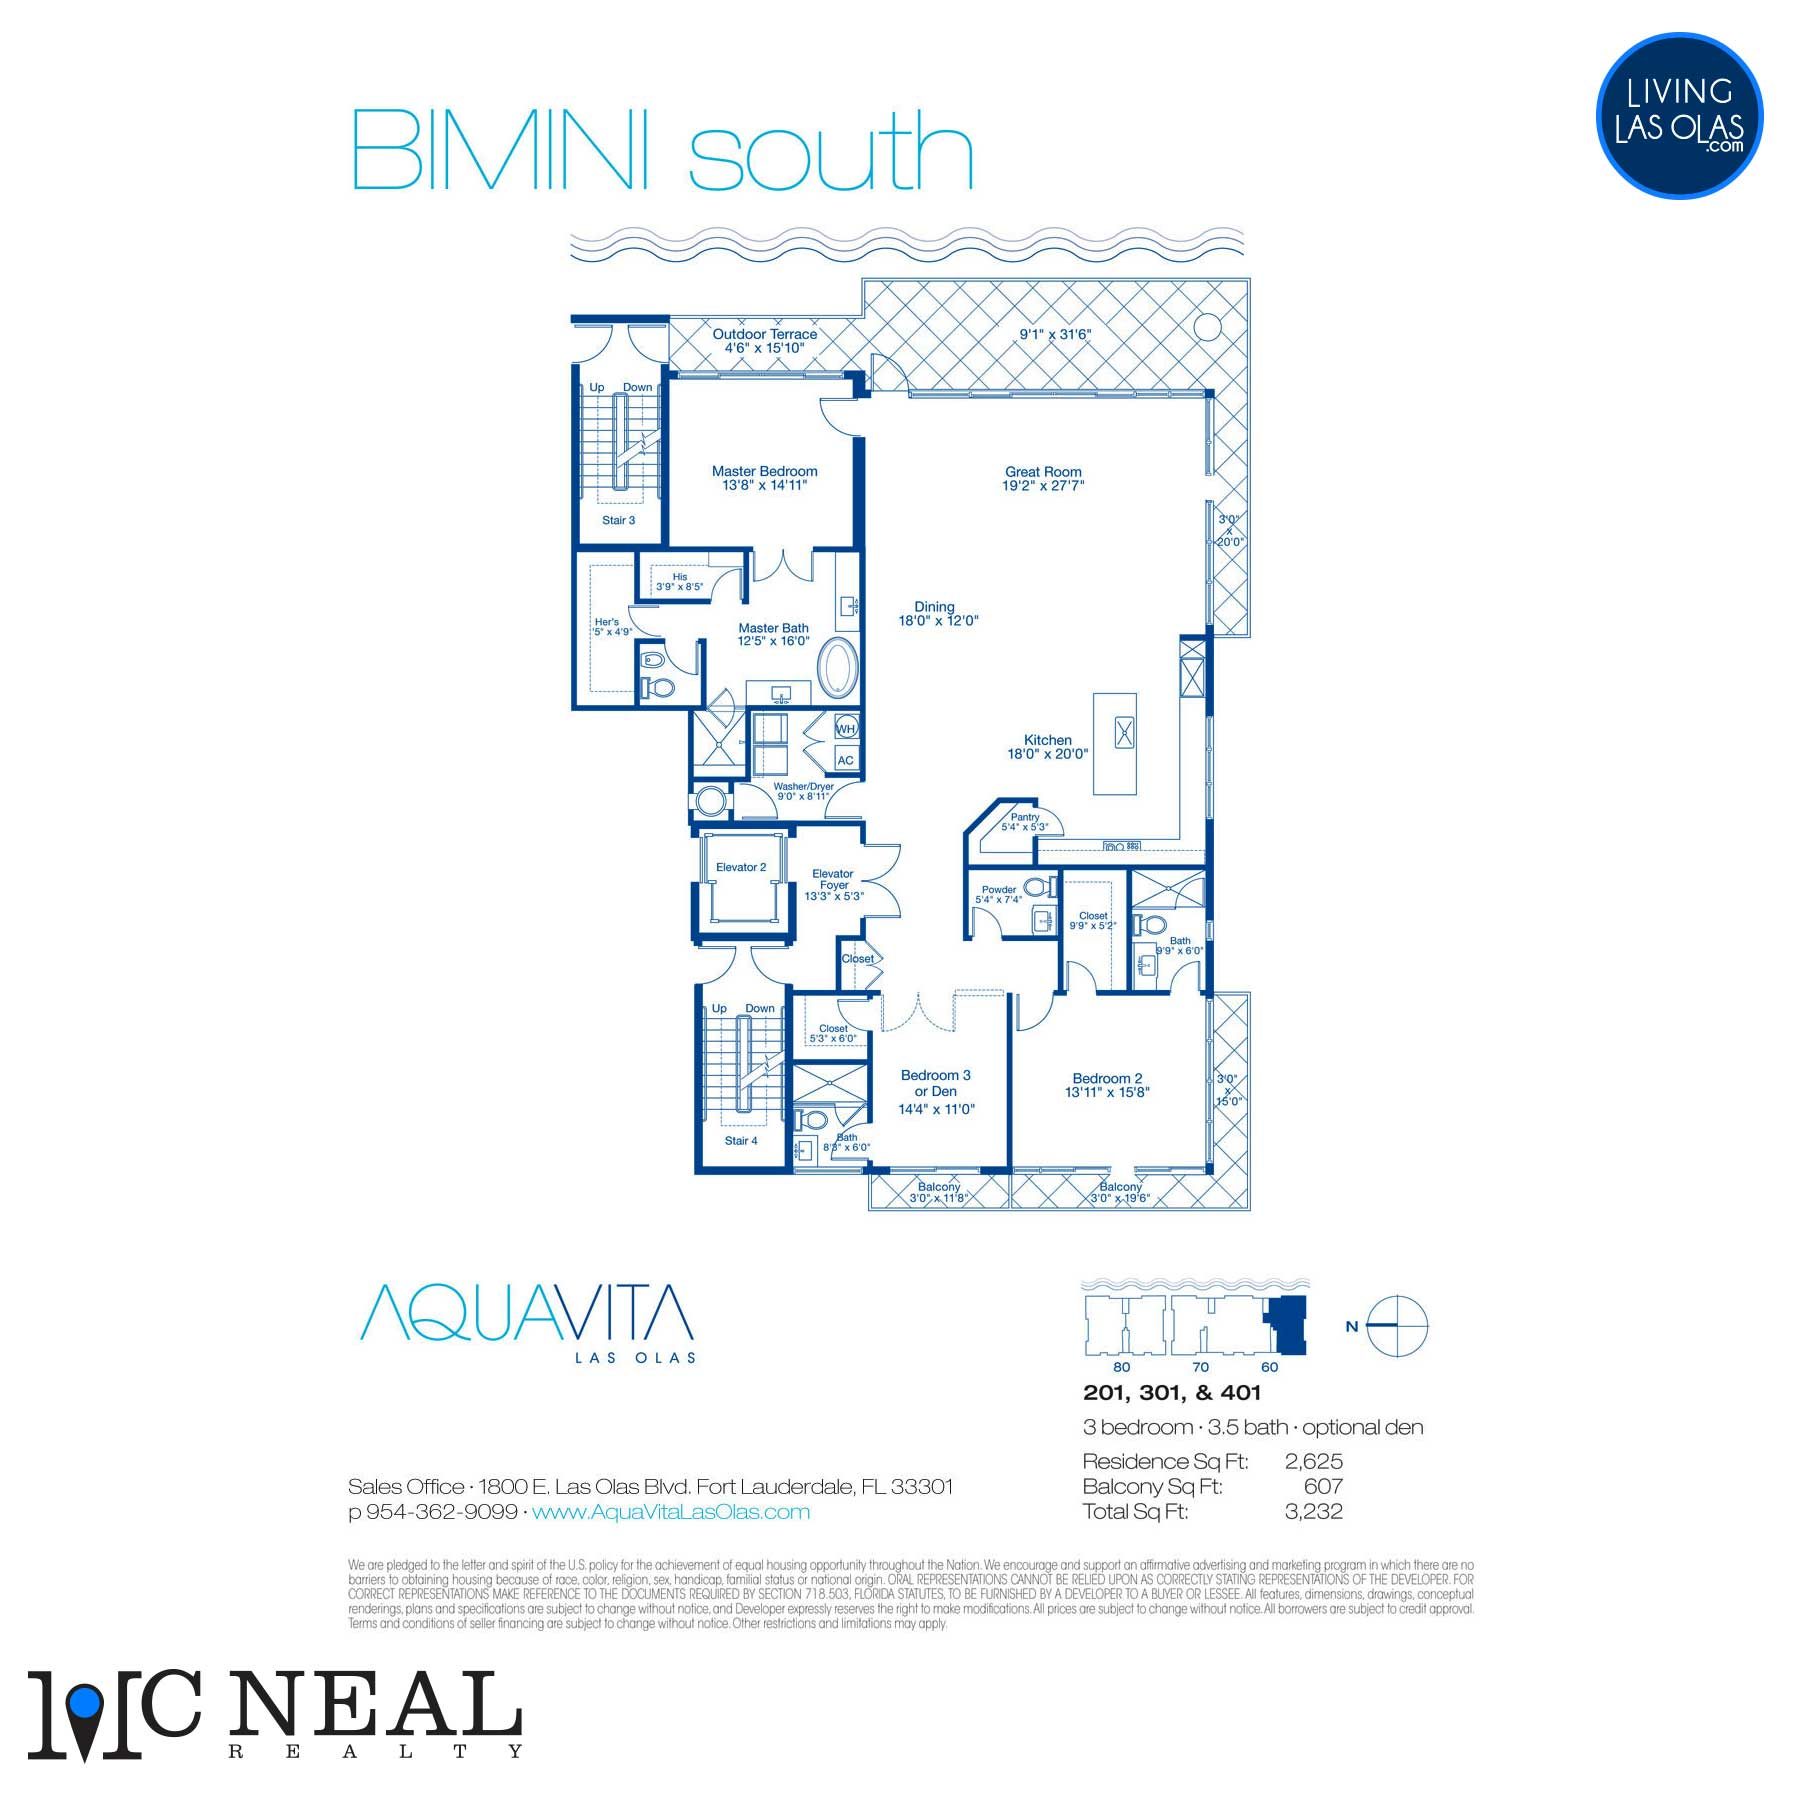 AquaVita Las Olas Floor Plans Bimini S